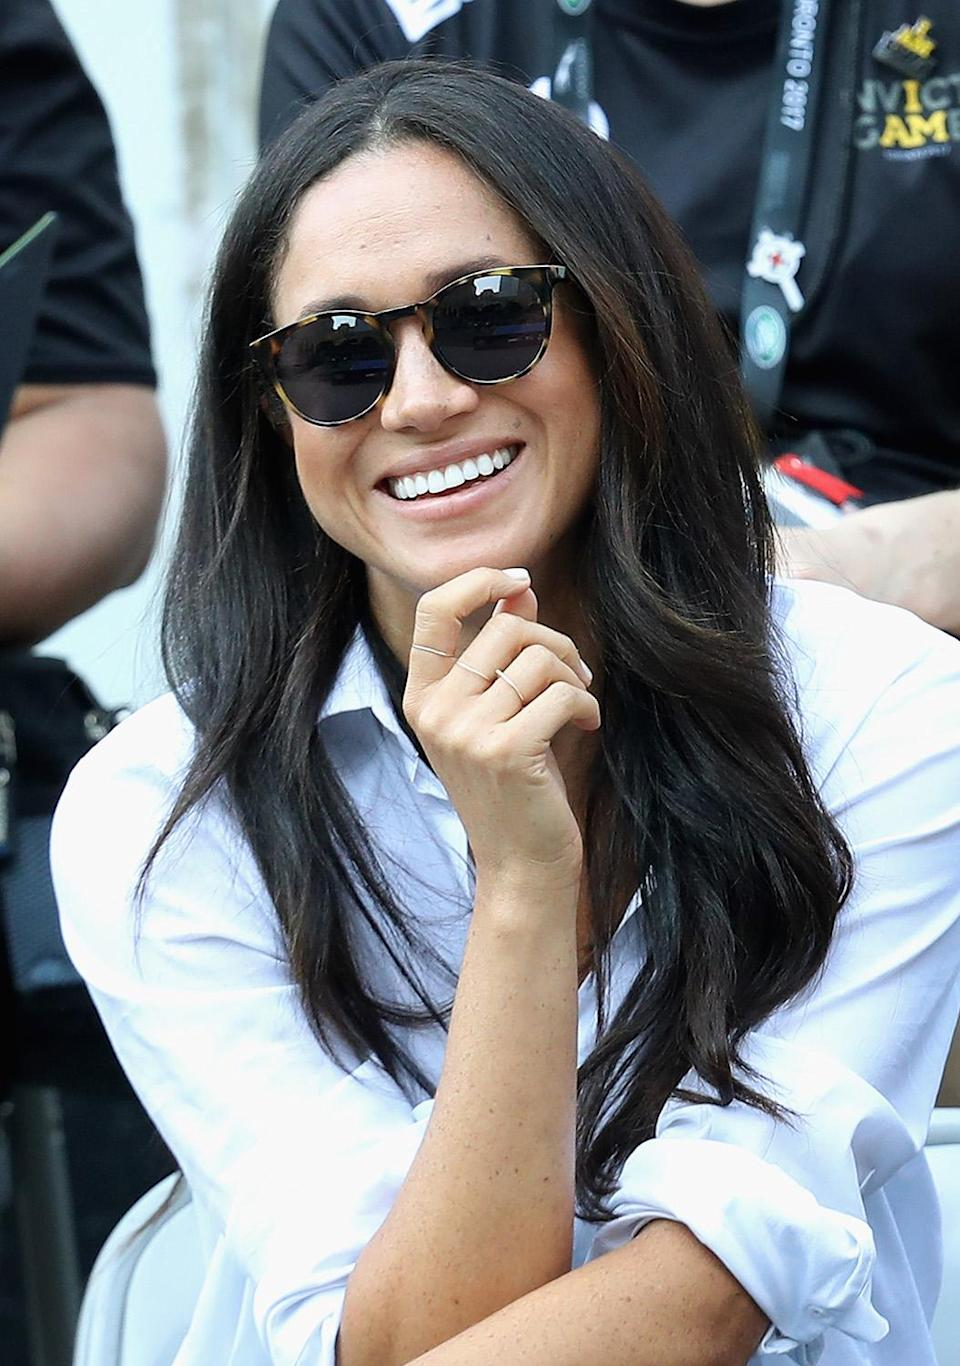 <p>Markle switches up her hair a lot, but this just might be her go-to signature look. (Photo: Chris Jackson/Getty Images for the Invictus Games Foundation) </p>